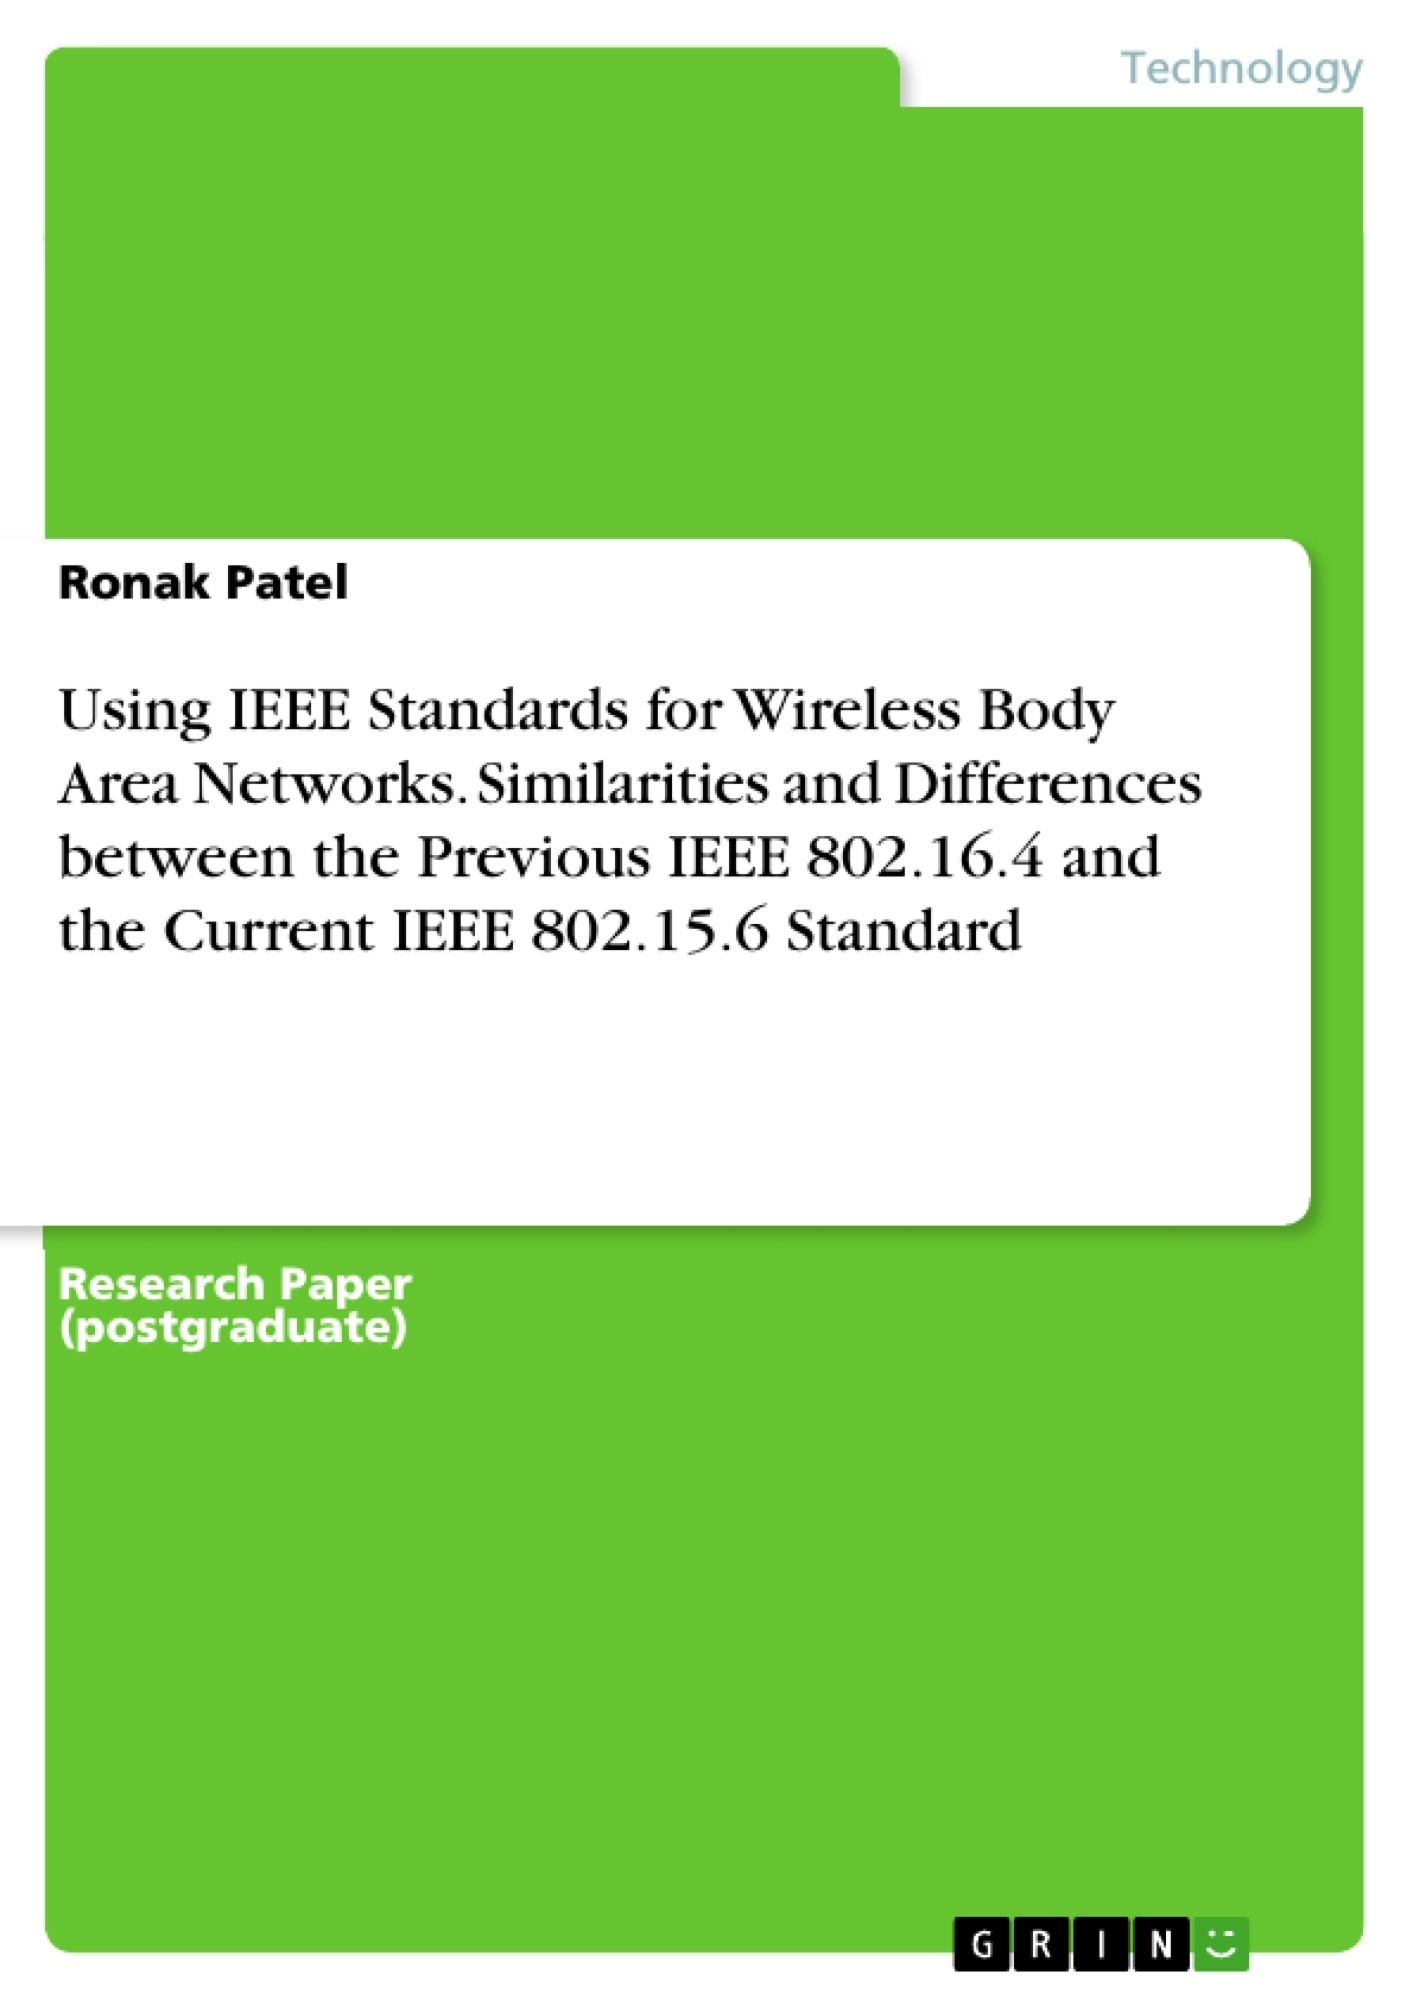 Title: Using IEEE Standards for Wireless Body Area Networks. Similarities and Differences between the Previous IEEE 802.16.4 and the Current IEEE 802.15.6 Standard